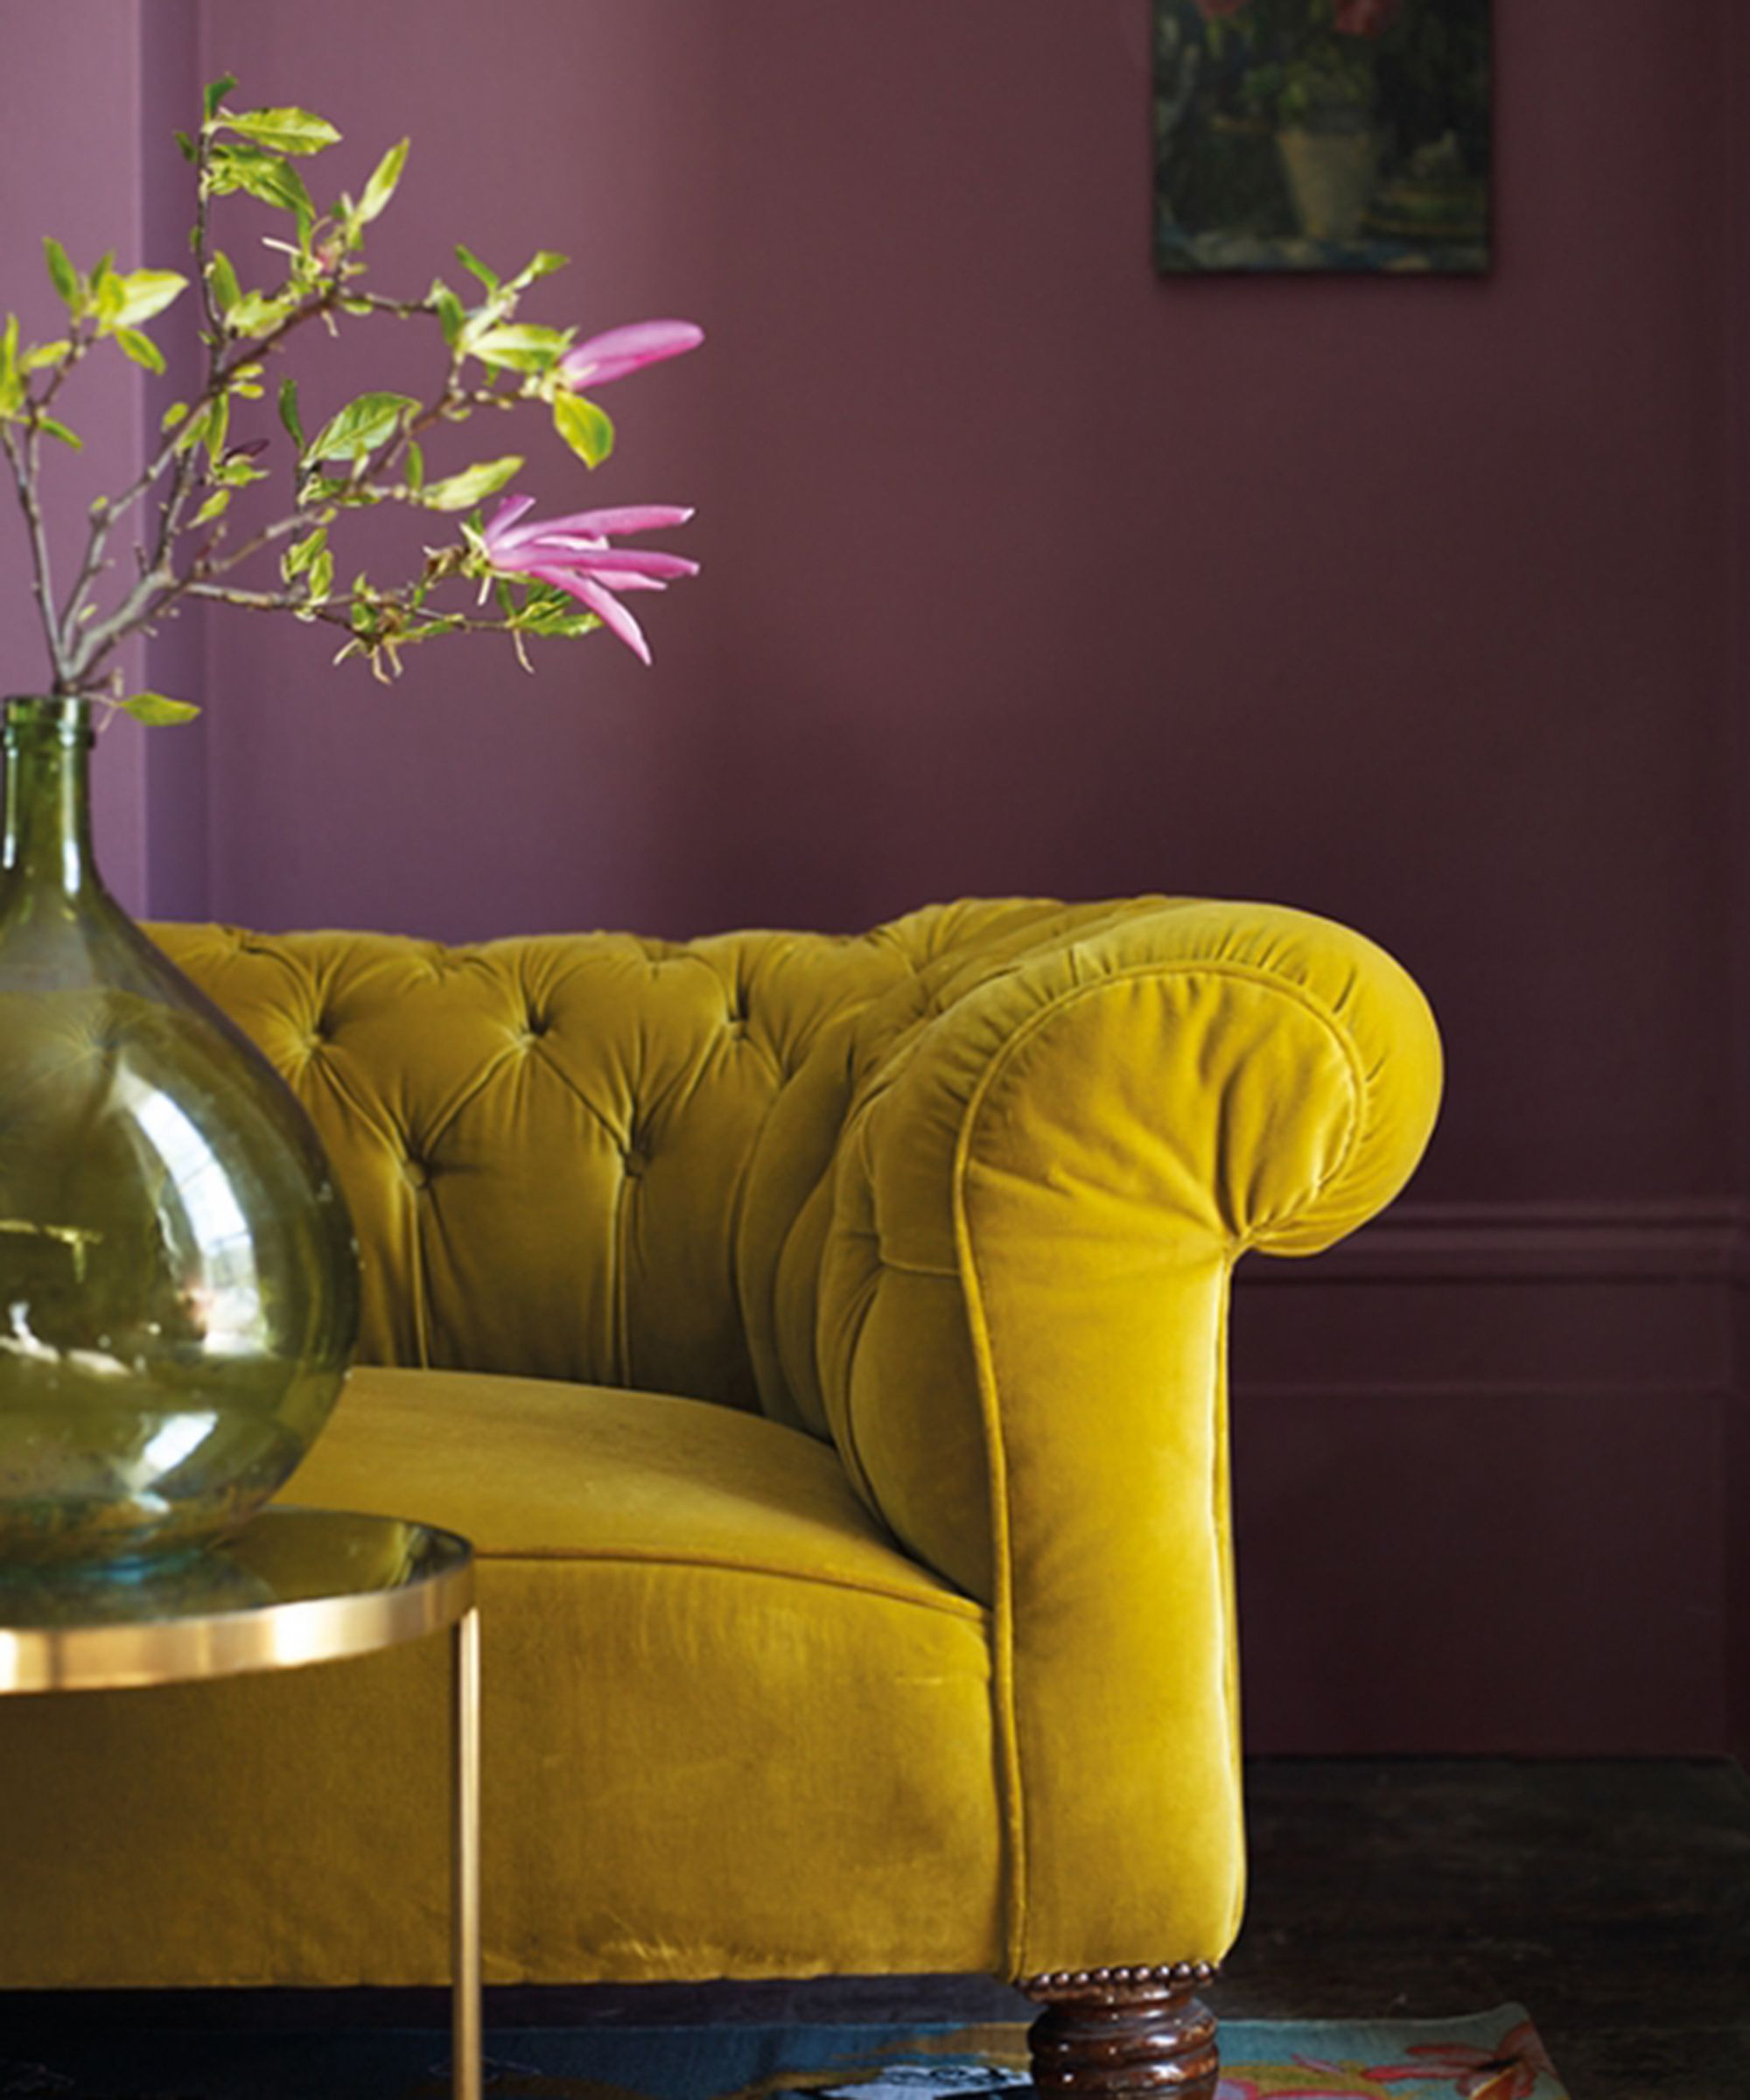 Unlikely Colour Combination - Interior Design | Wall colors ...